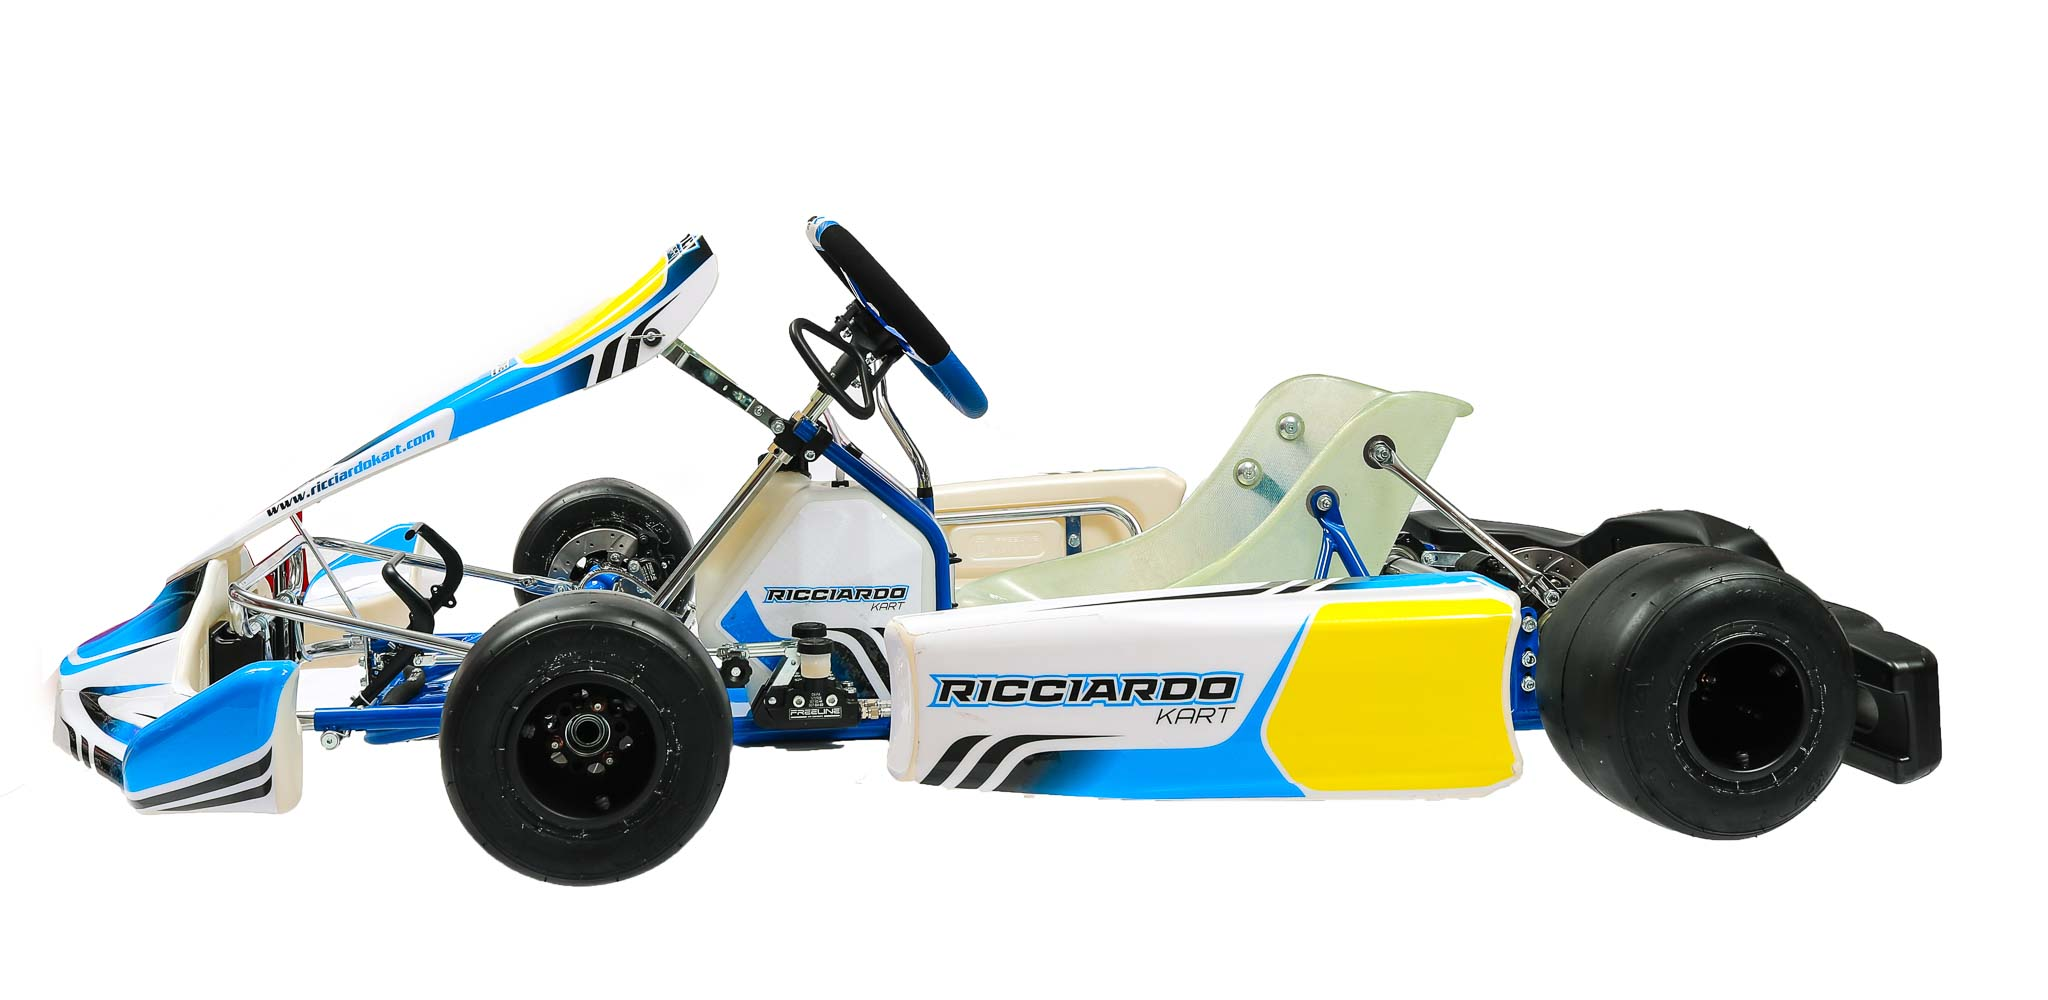 The 2018 Ricciardo Kart - TKART - News, tips, tech about karting